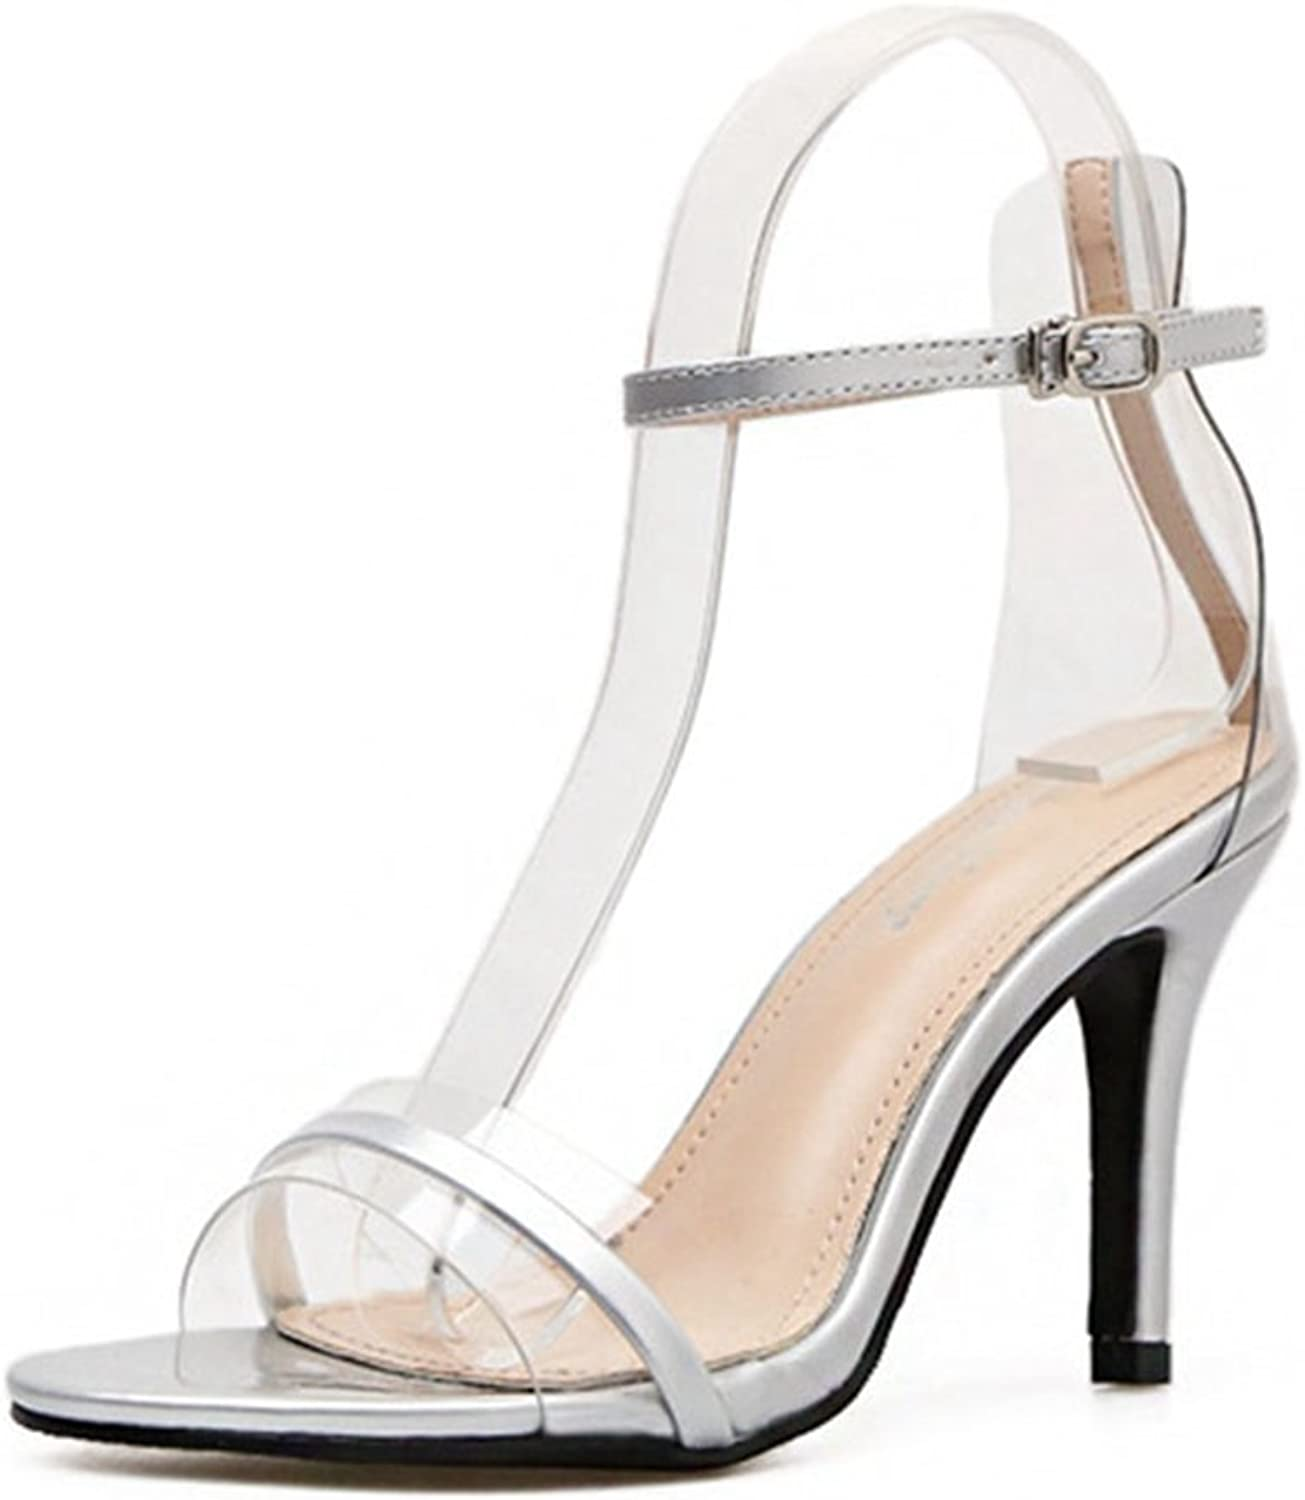 GIY Women's High Heel Sandal Open Toe Ankle Buckle Strap Stiletto Pump Sandals Dress Casual Party shoes